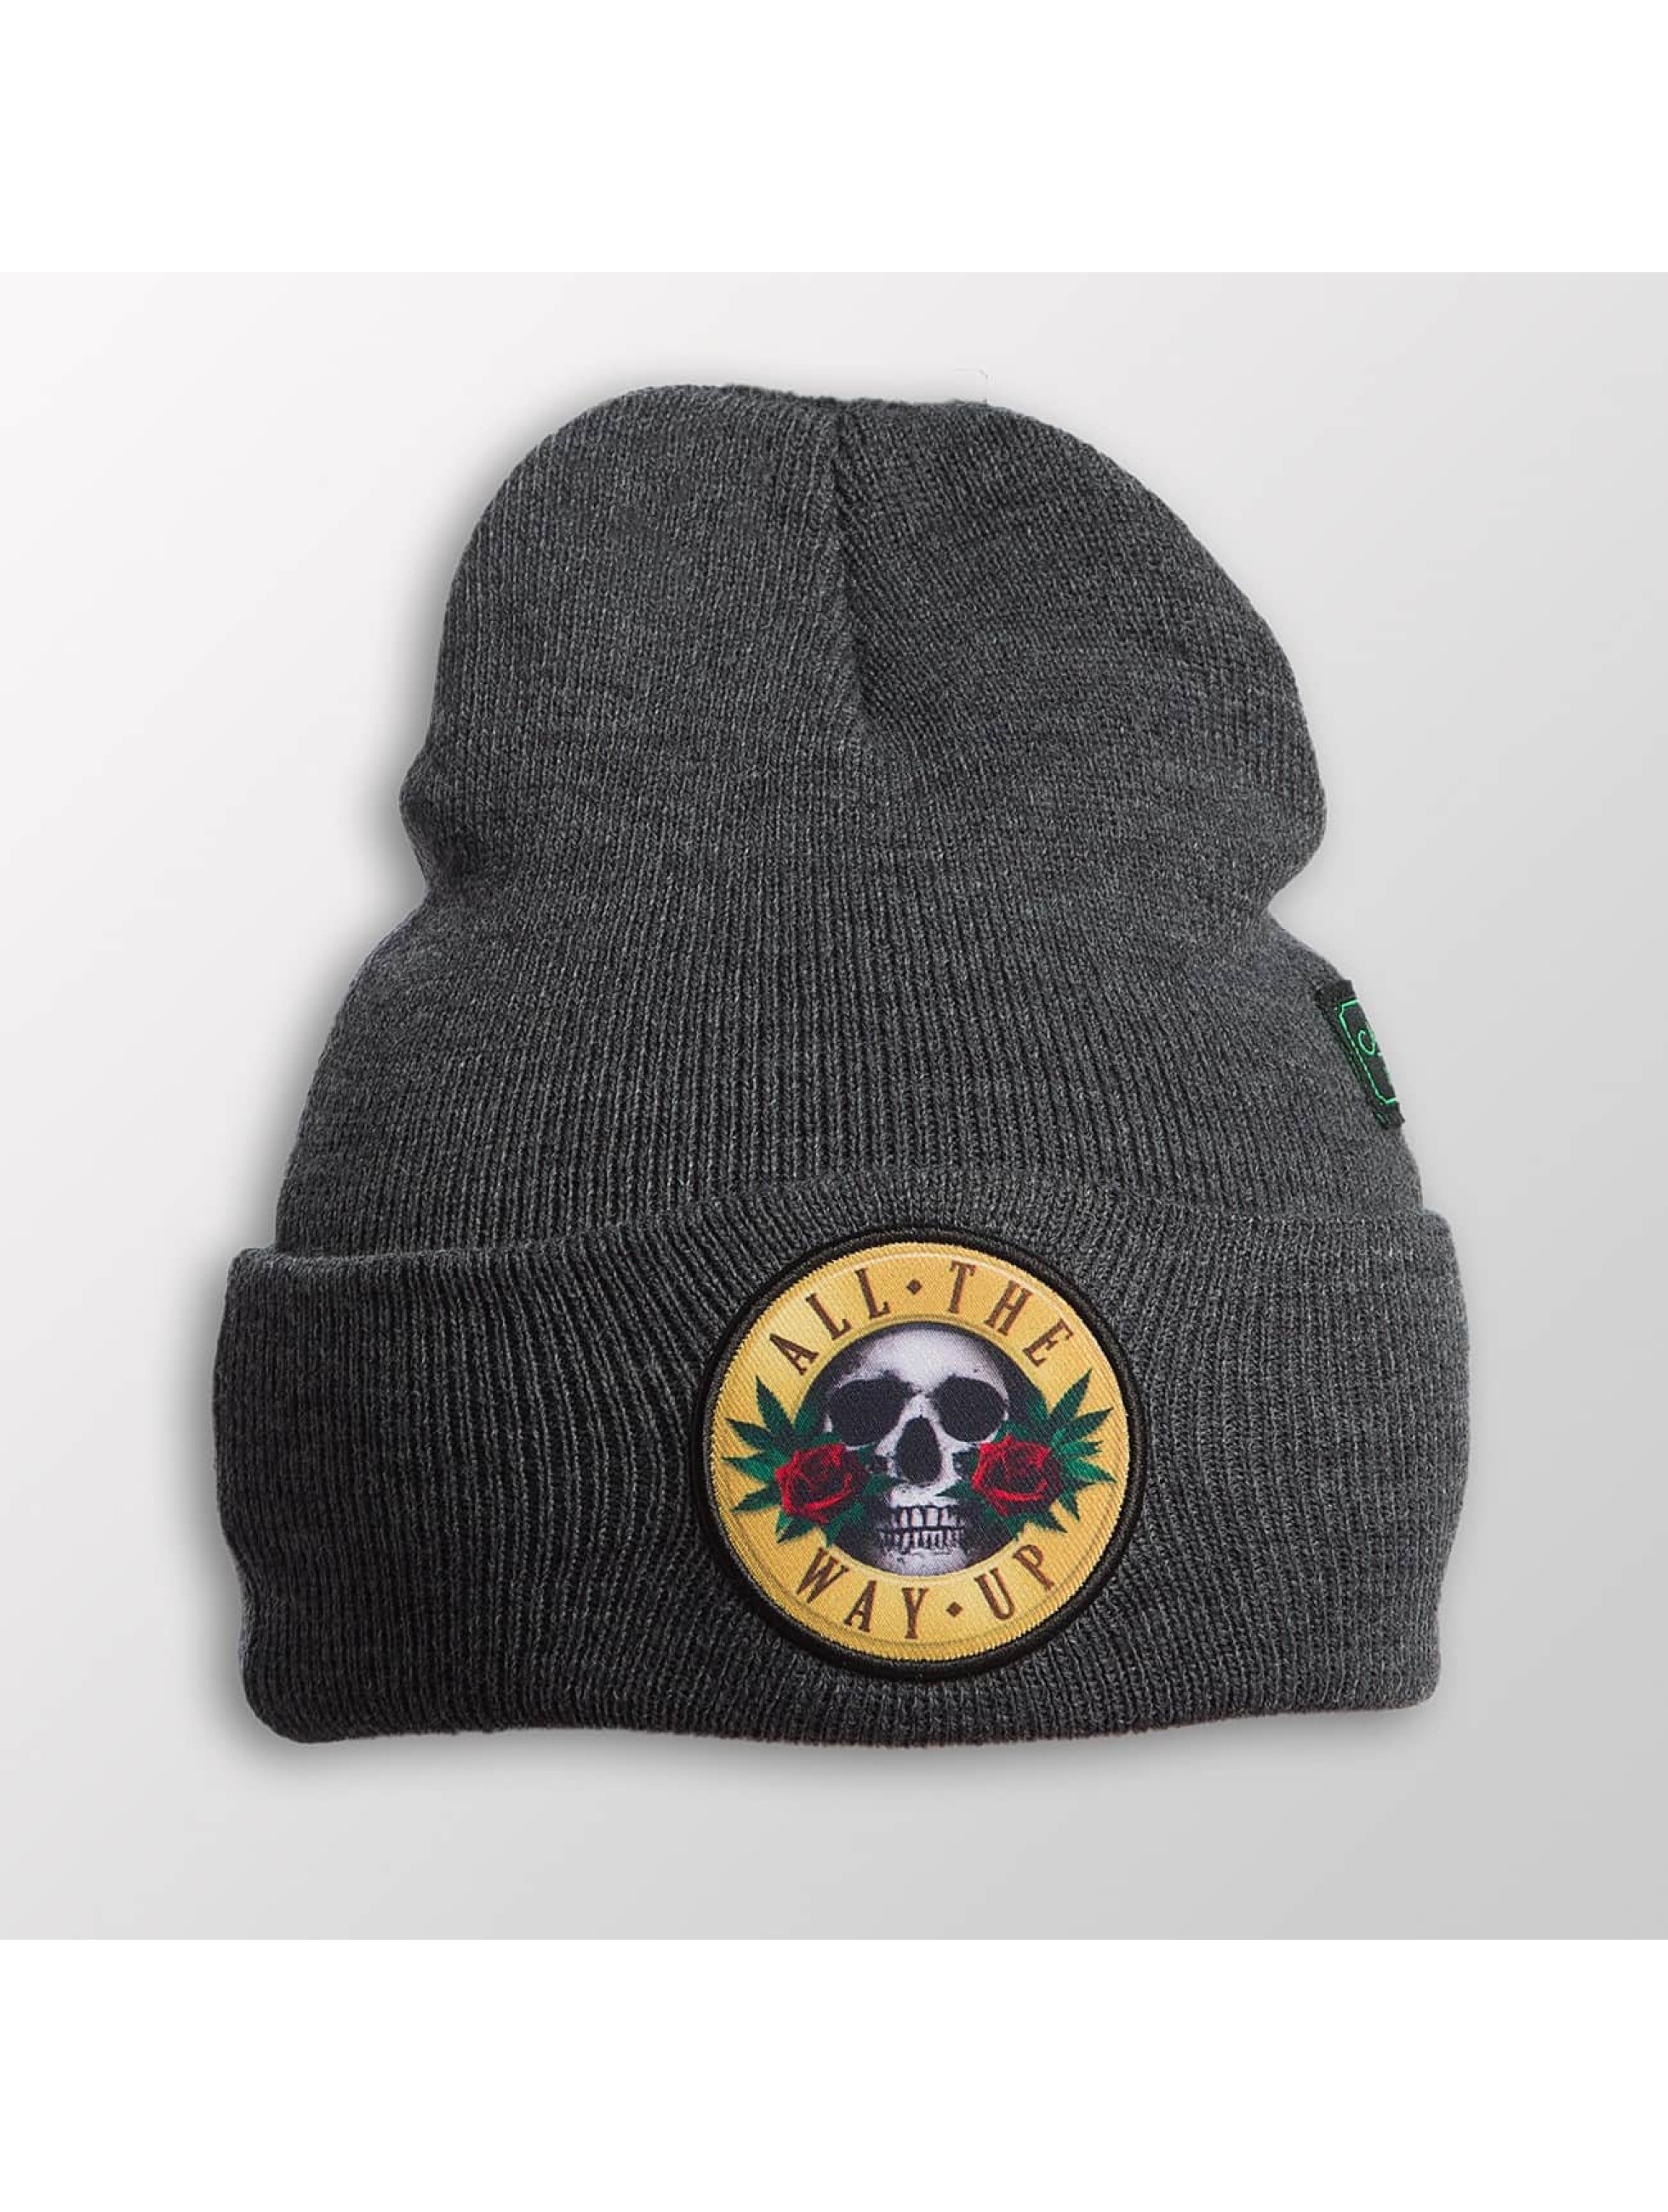 Cayler & Sons Männer,Frauen Beanie WL Budz N´ Skullz Old School in grau